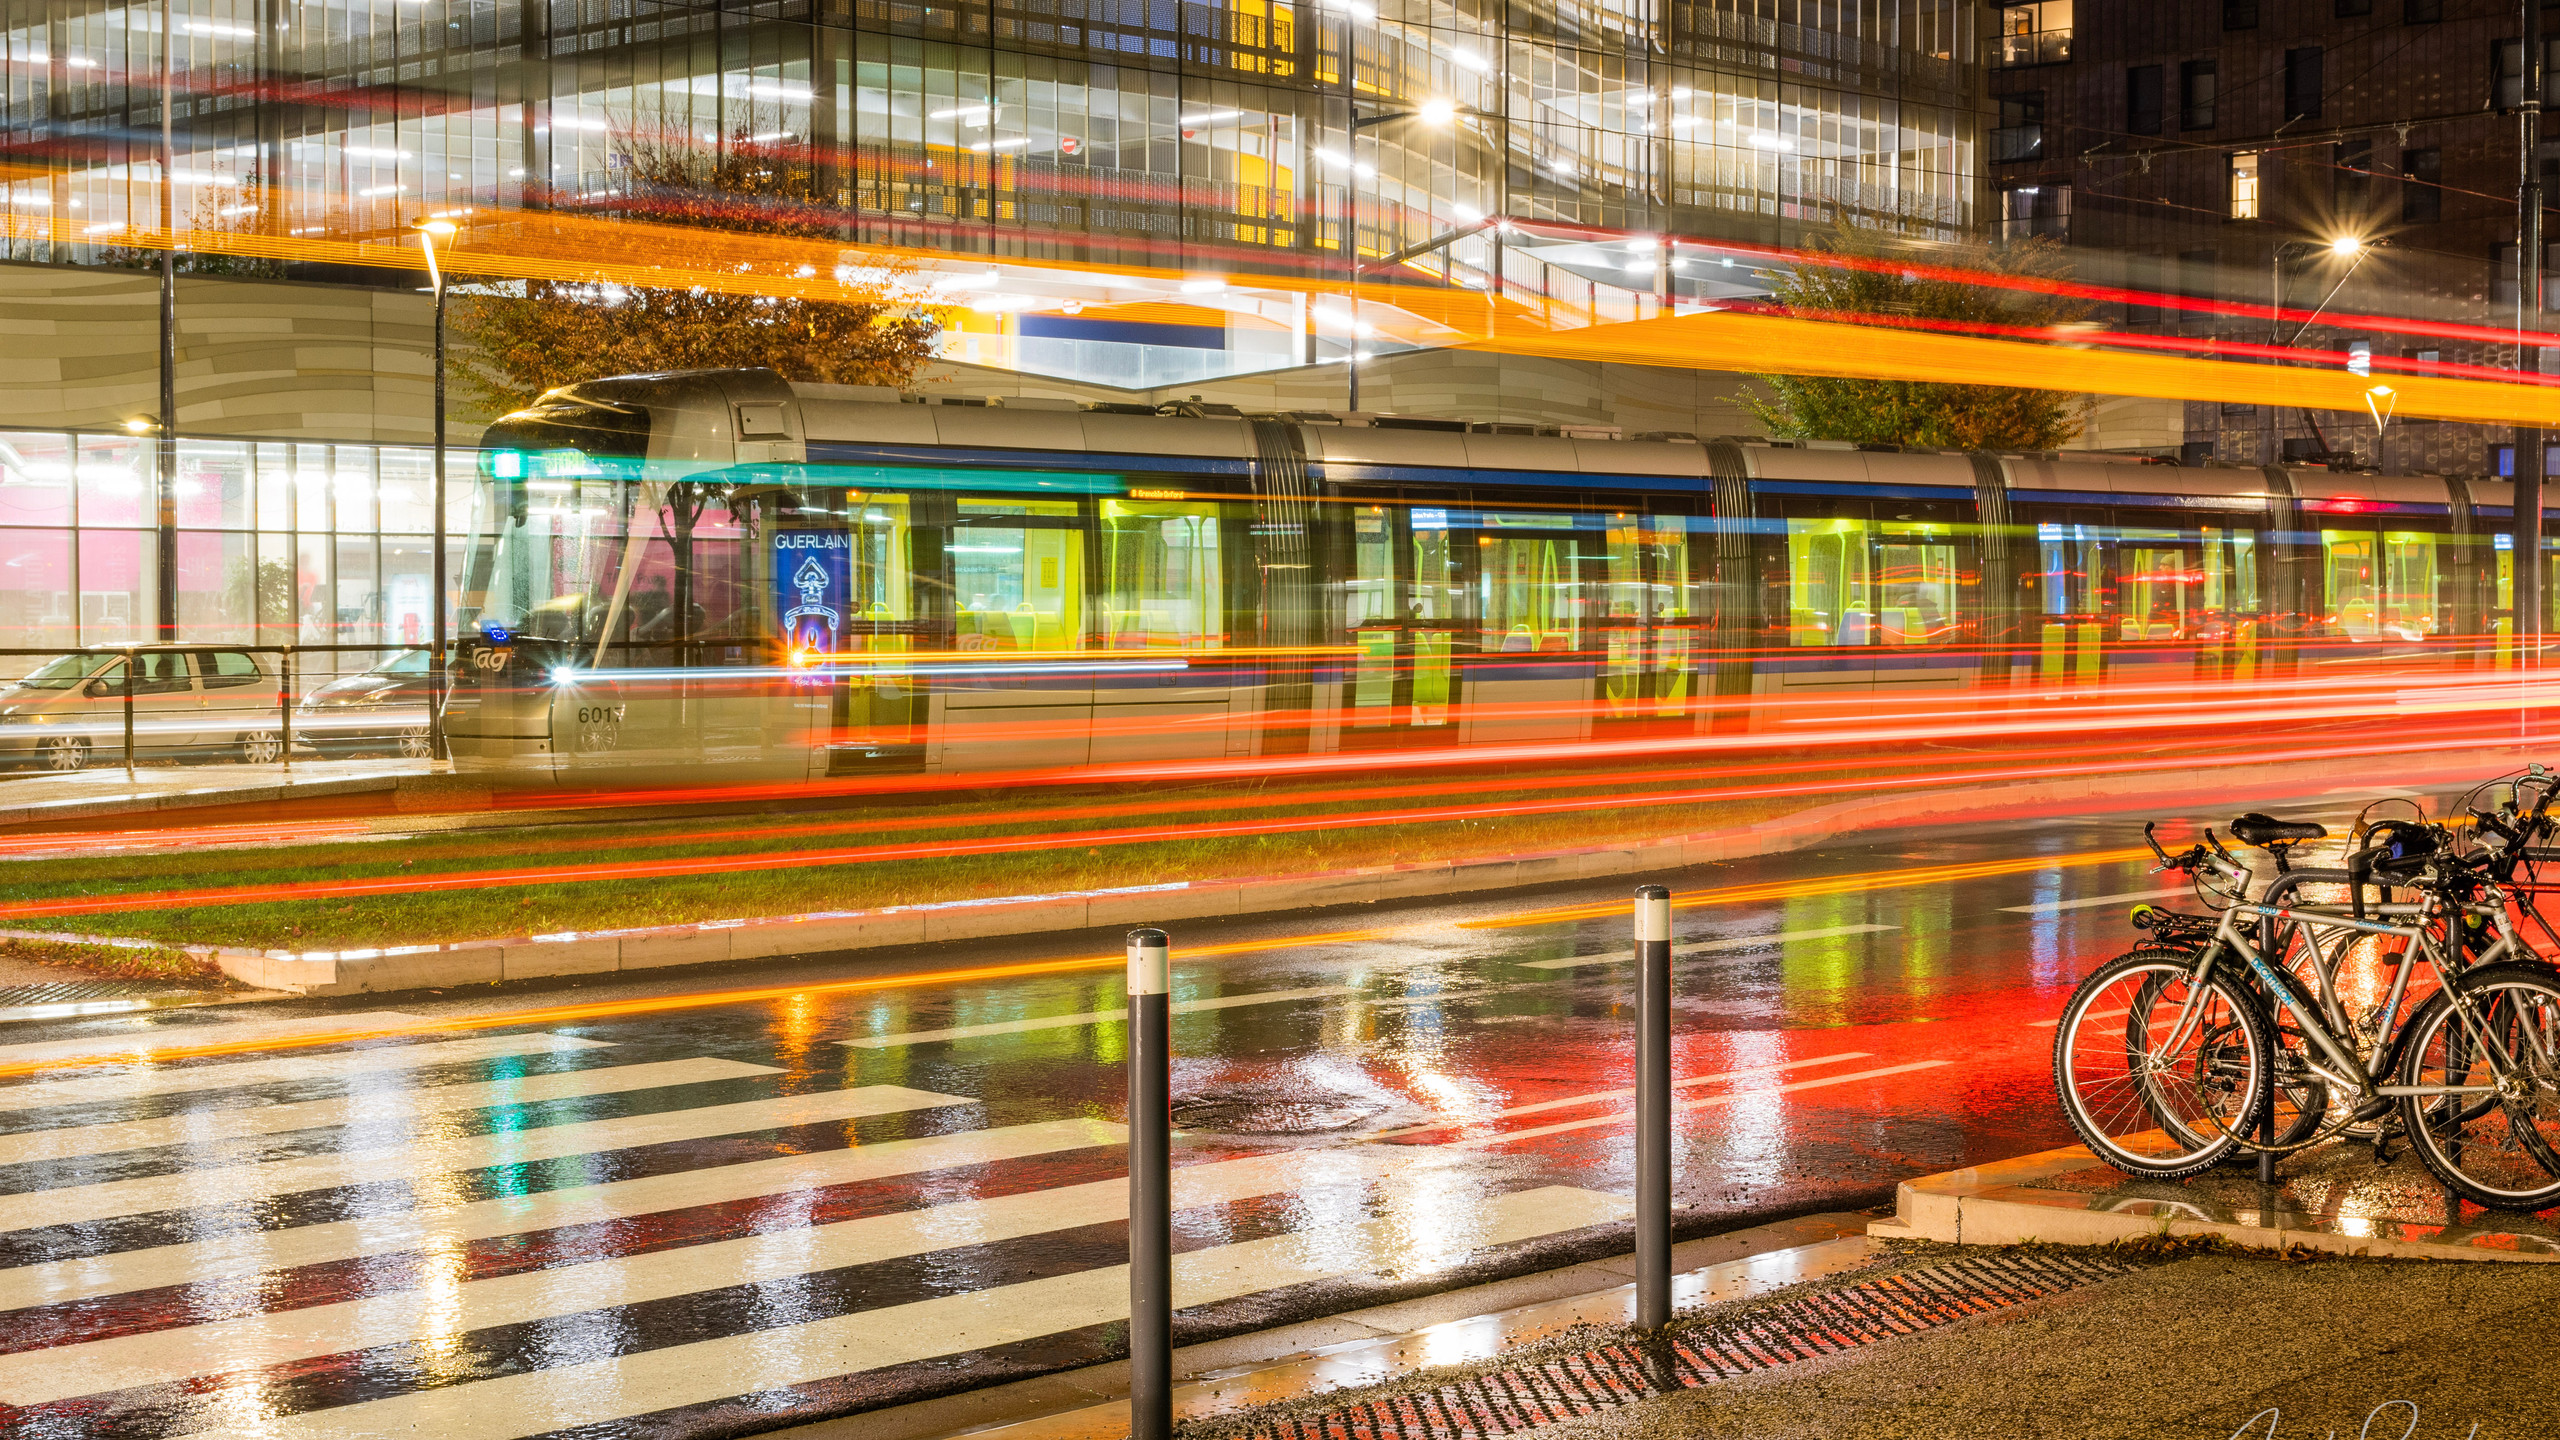 A tram from Grenoble on a rainy night